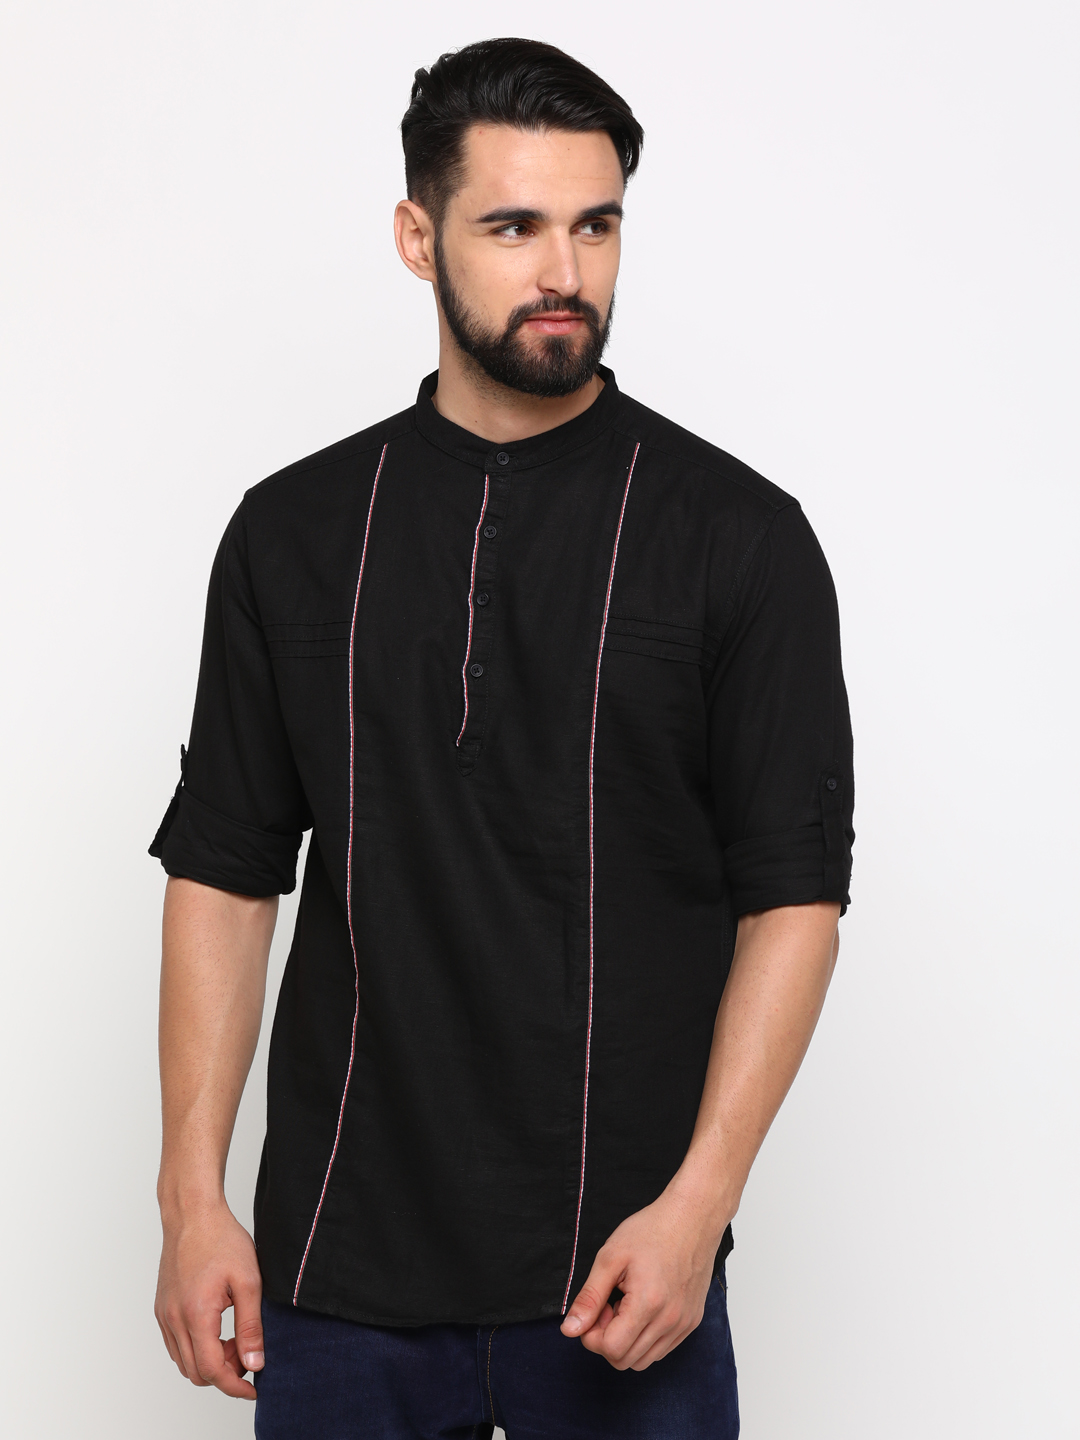 With | With Men's Black Cotton Solid SlimFit Shirt